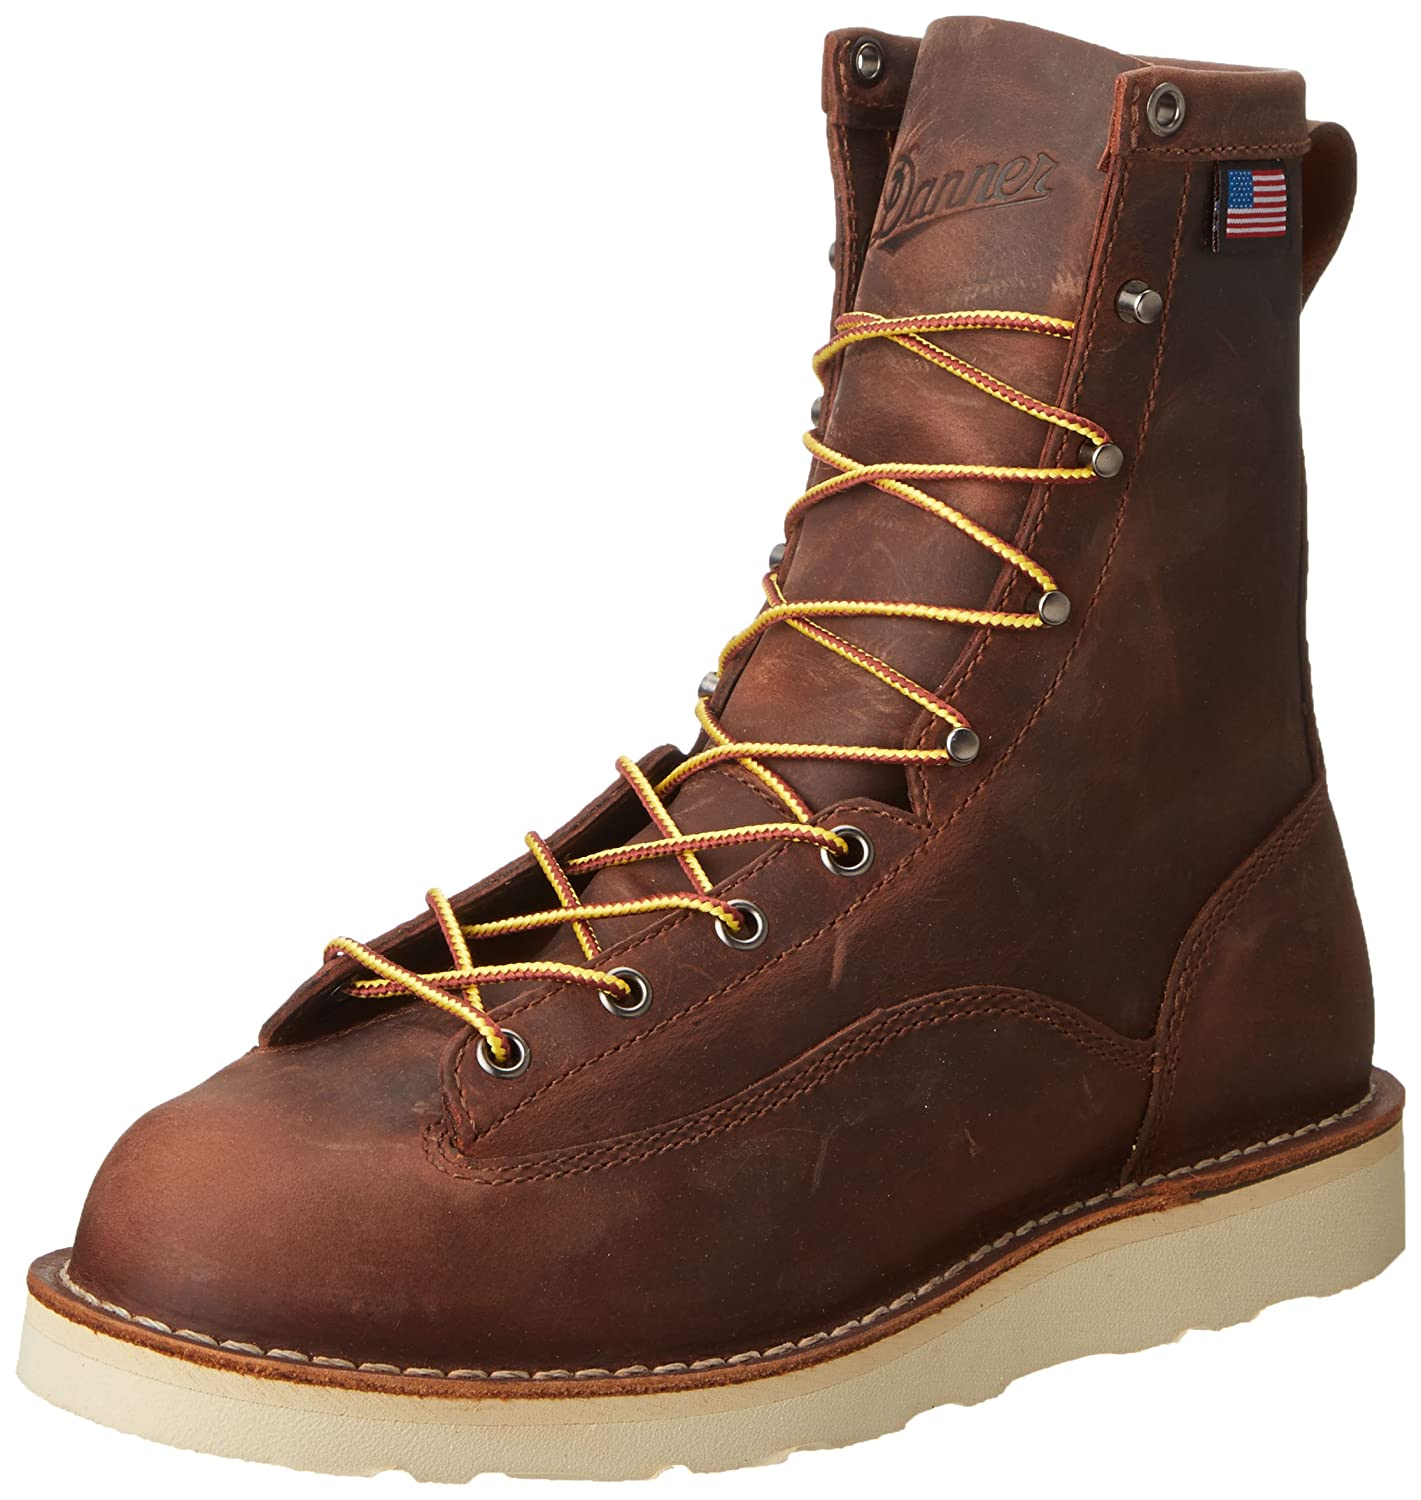 Amazon.com: Danner Men's Bull Run 8-Inch BRN Cristy Work Boot: Shoes